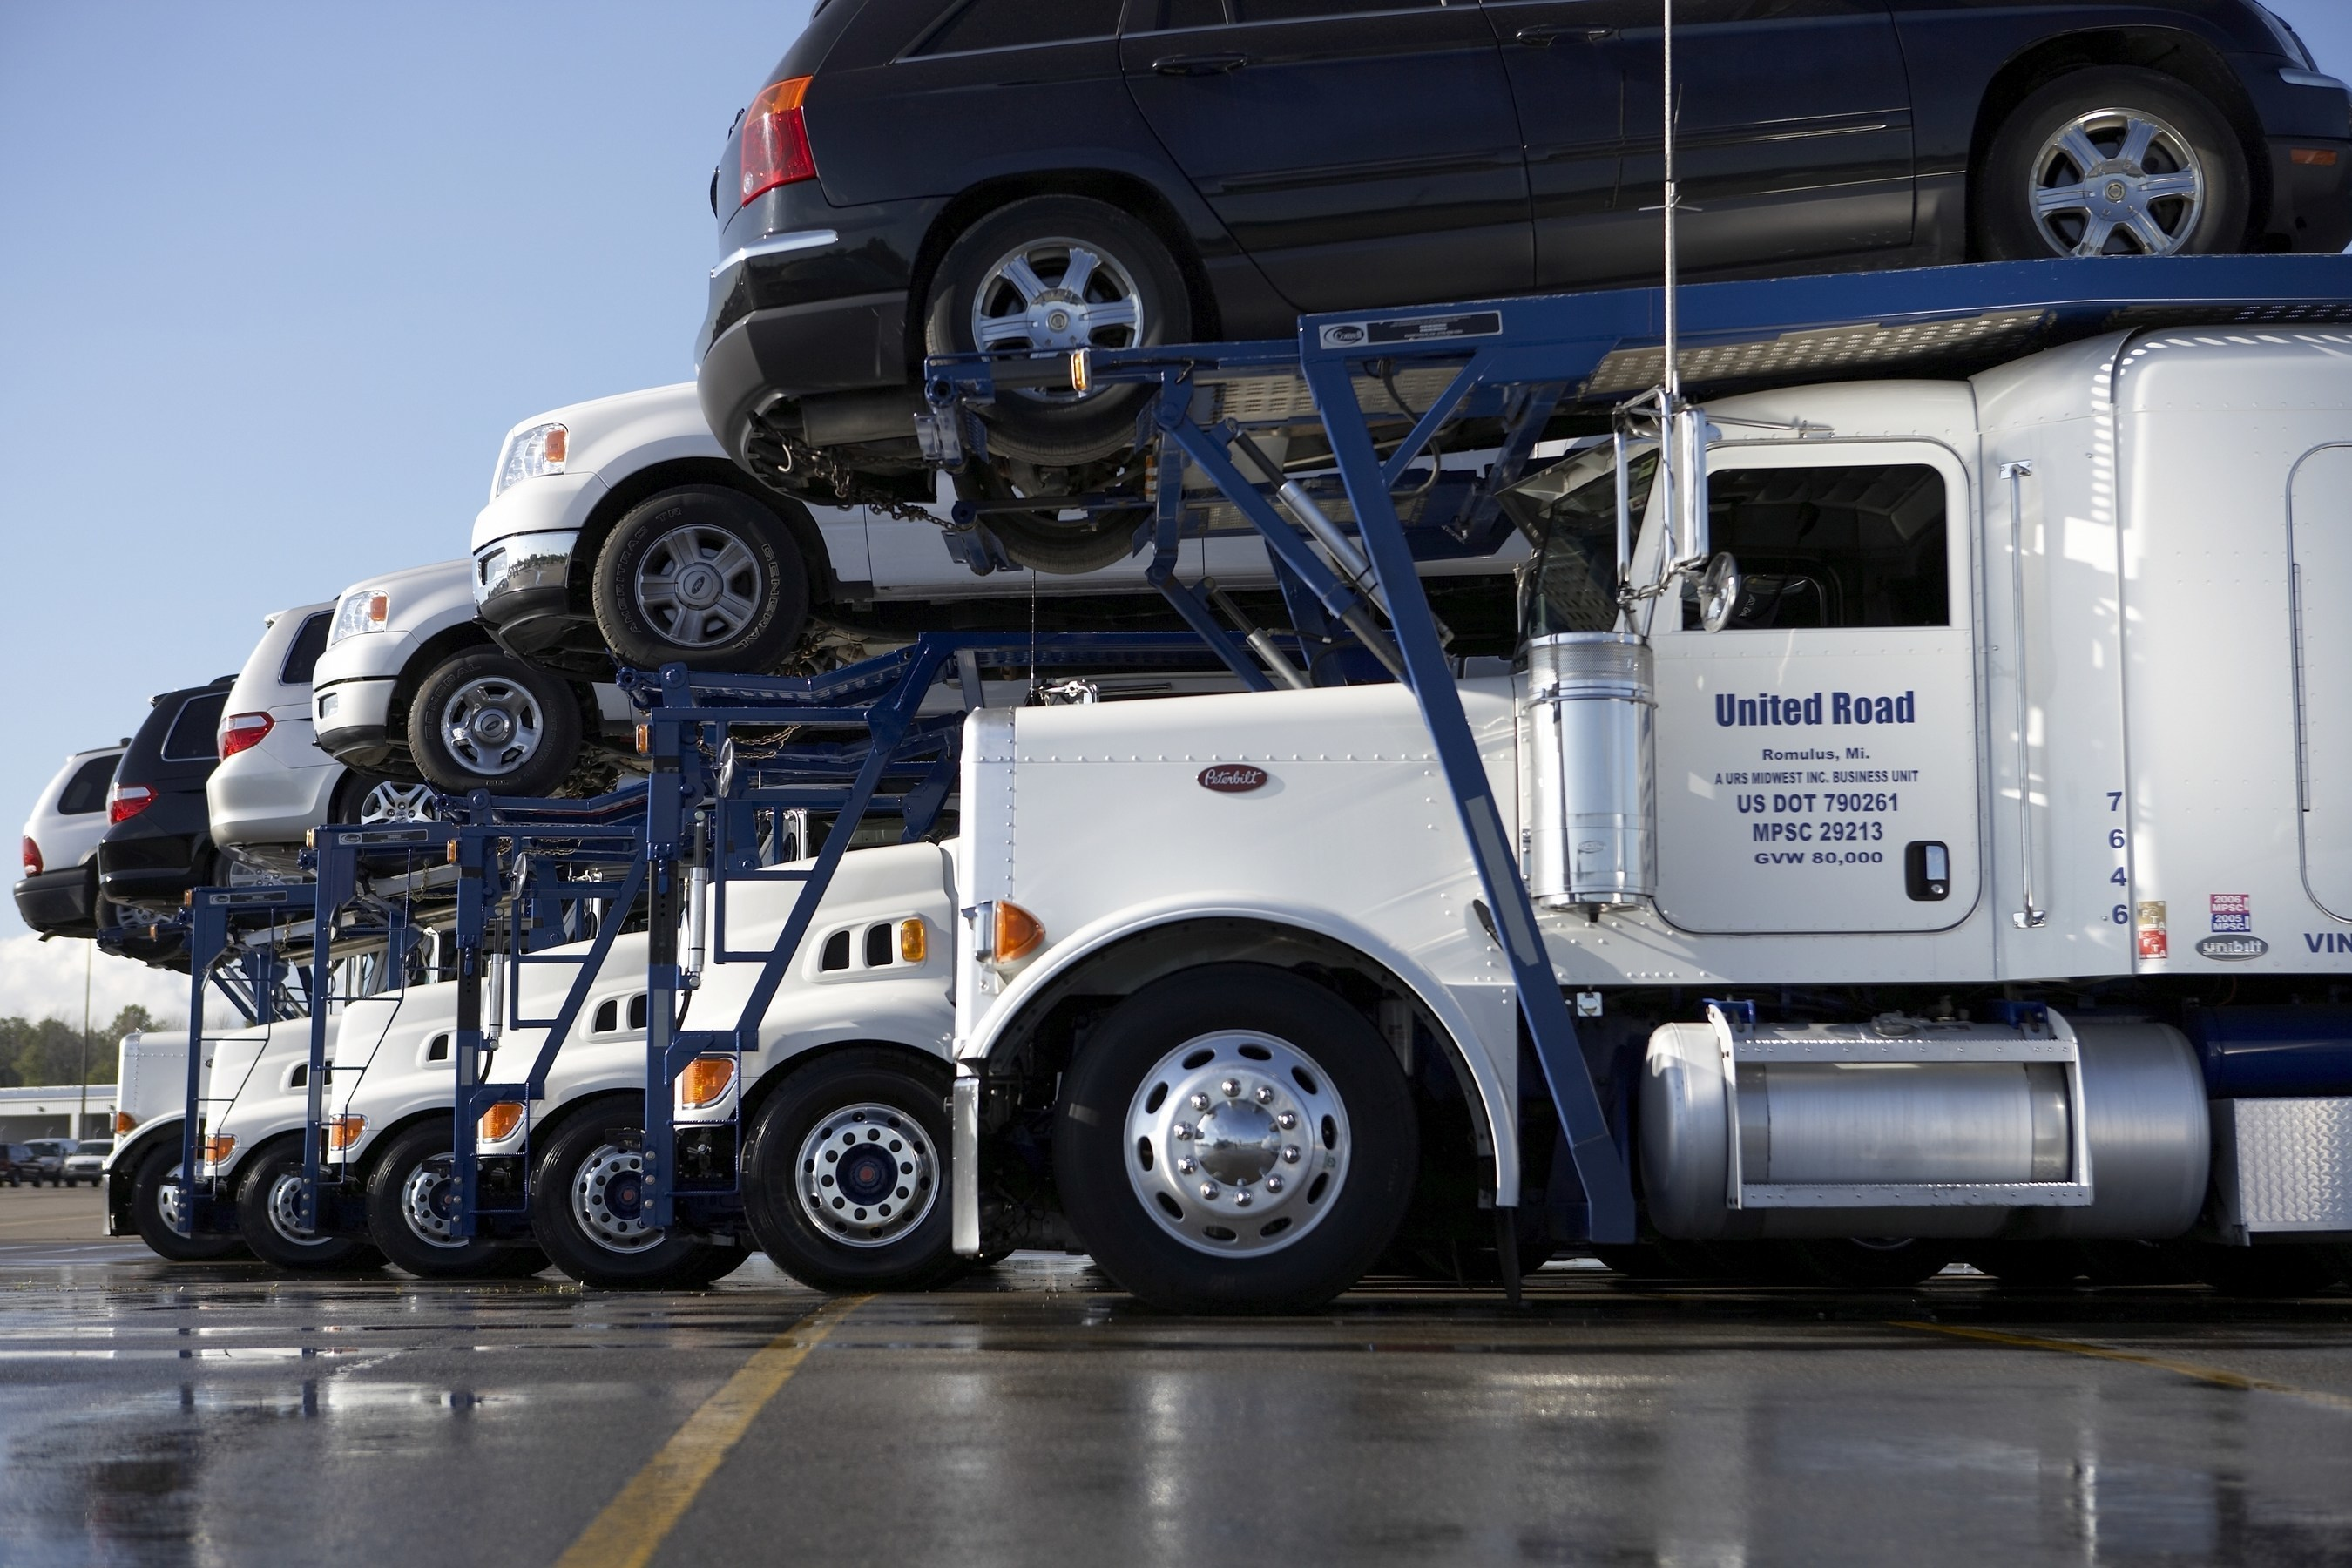 AutoWurld Members Now Gain Access to Discounted Auto Transportation from United Road Services